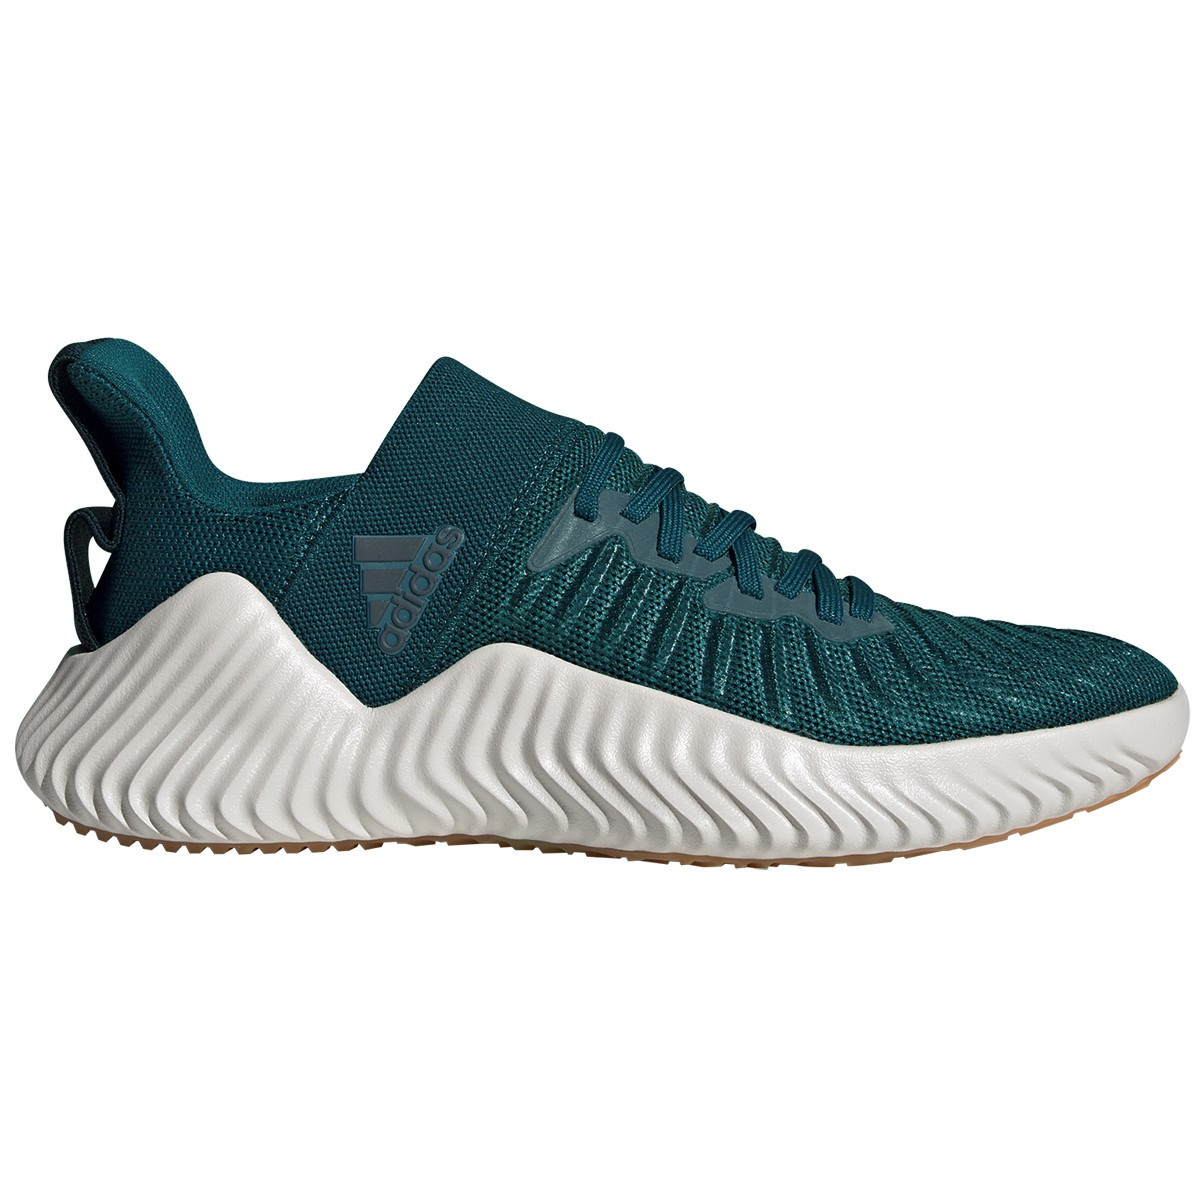 CHAUSSURES ADIDAS ALPHA BOUNCE TRAINER